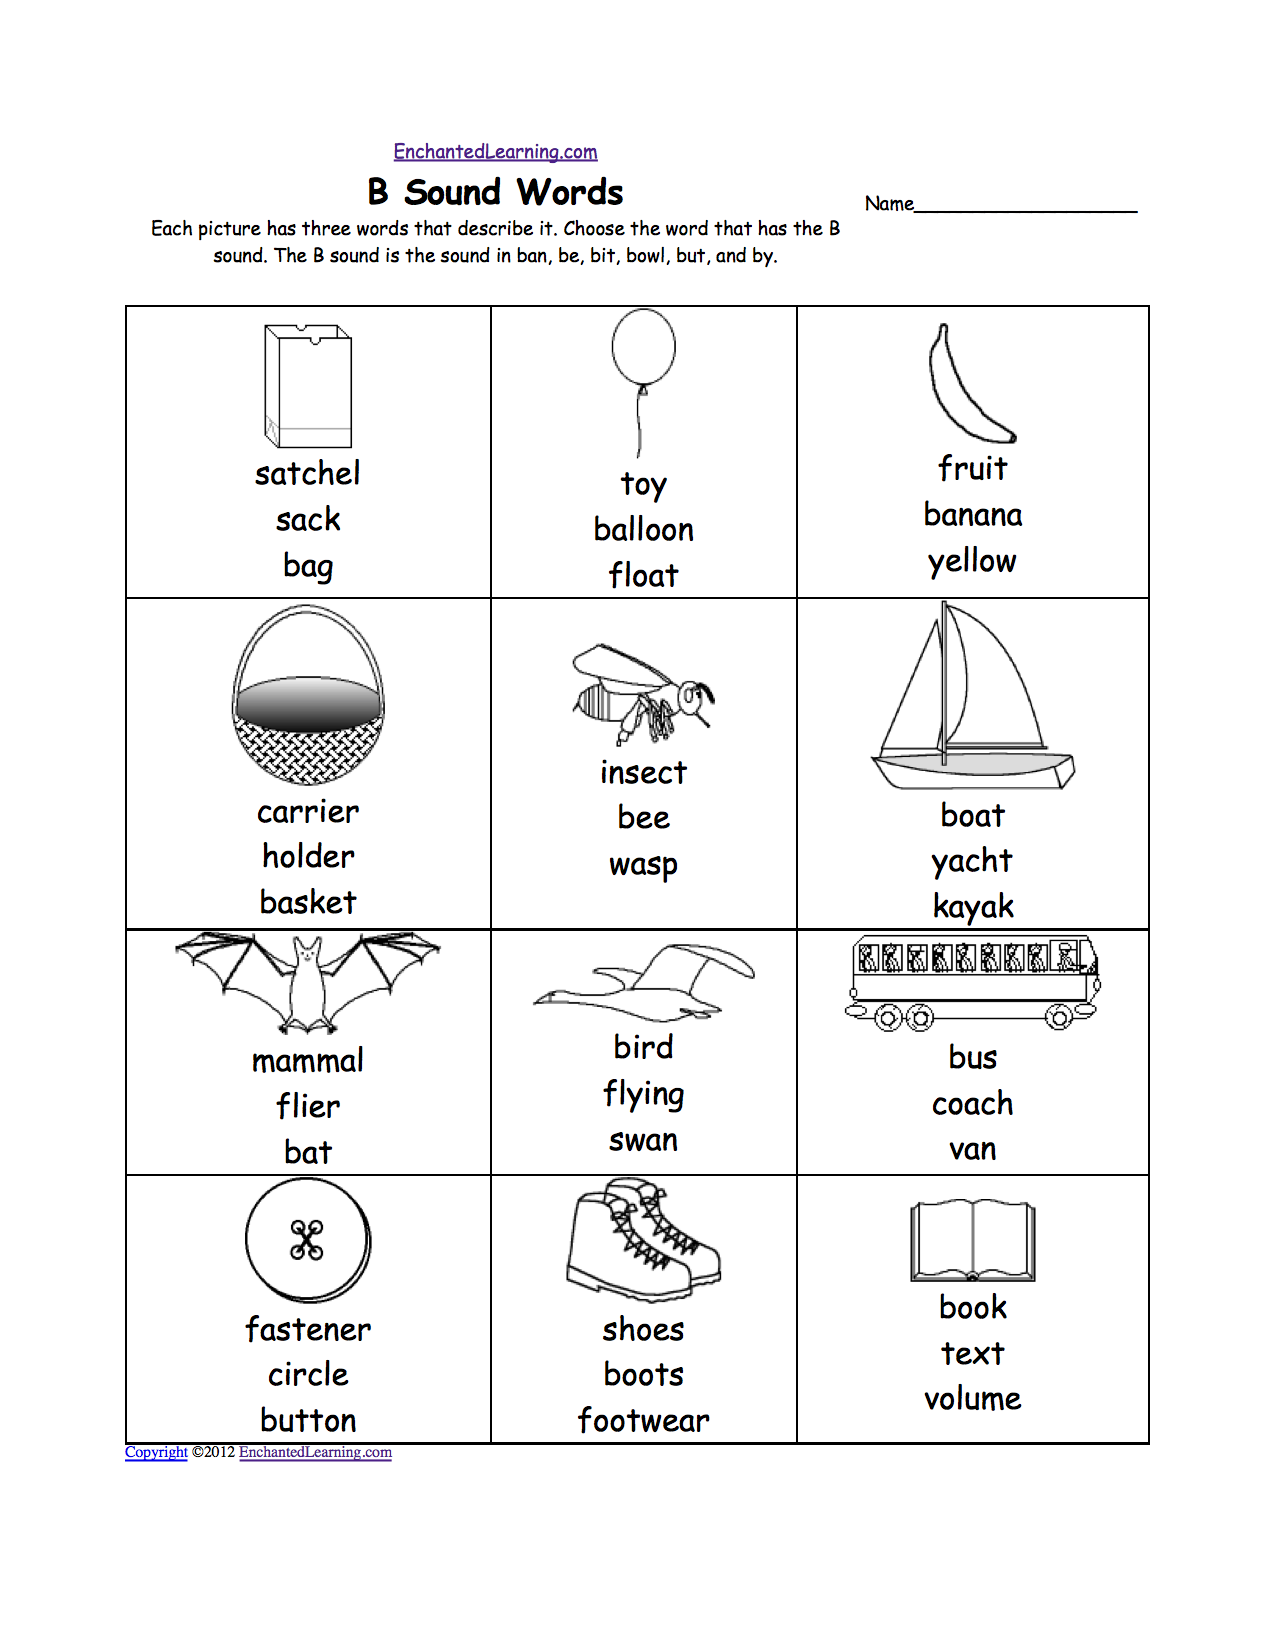 Aldiablosus  Outstanding Phonics Worksheets Multiple Choice Worksheets To Print  With Fetching Quotbquot Sound Phonics Worksheet Multiple Choice Each Picture Has Three Words That Describe It Choose The Word That Has A Quotbquot Sound The Quotbquot Sound Is The Sound  With Astonishing In And Out Worksheets Also First Grade Morning Work Worksheets In Addition Piecewise Linear Functions Worksheet And Energy Transformation Worksheets As Well As Subject And Predicate Worksheets Nd Grade Additionally Algebra  Worksheets Answers From Enchantedlearningcom With Aldiablosus  Fetching Phonics Worksheets Multiple Choice Worksheets To Print  With Astonishing Quotbquot Sound Phonics Worksheet Multiple Choice Each Picture Has Three Words That Describe It Choose The Word That Has A Quotbquot Sound The Quotbquot Sound Is The Sound  And Outstanding In And Out Worksheets Also First Grade Morning Work Worksheets In Addition Piecewise Linear Functions Worksheet From Enchantedlearningcom